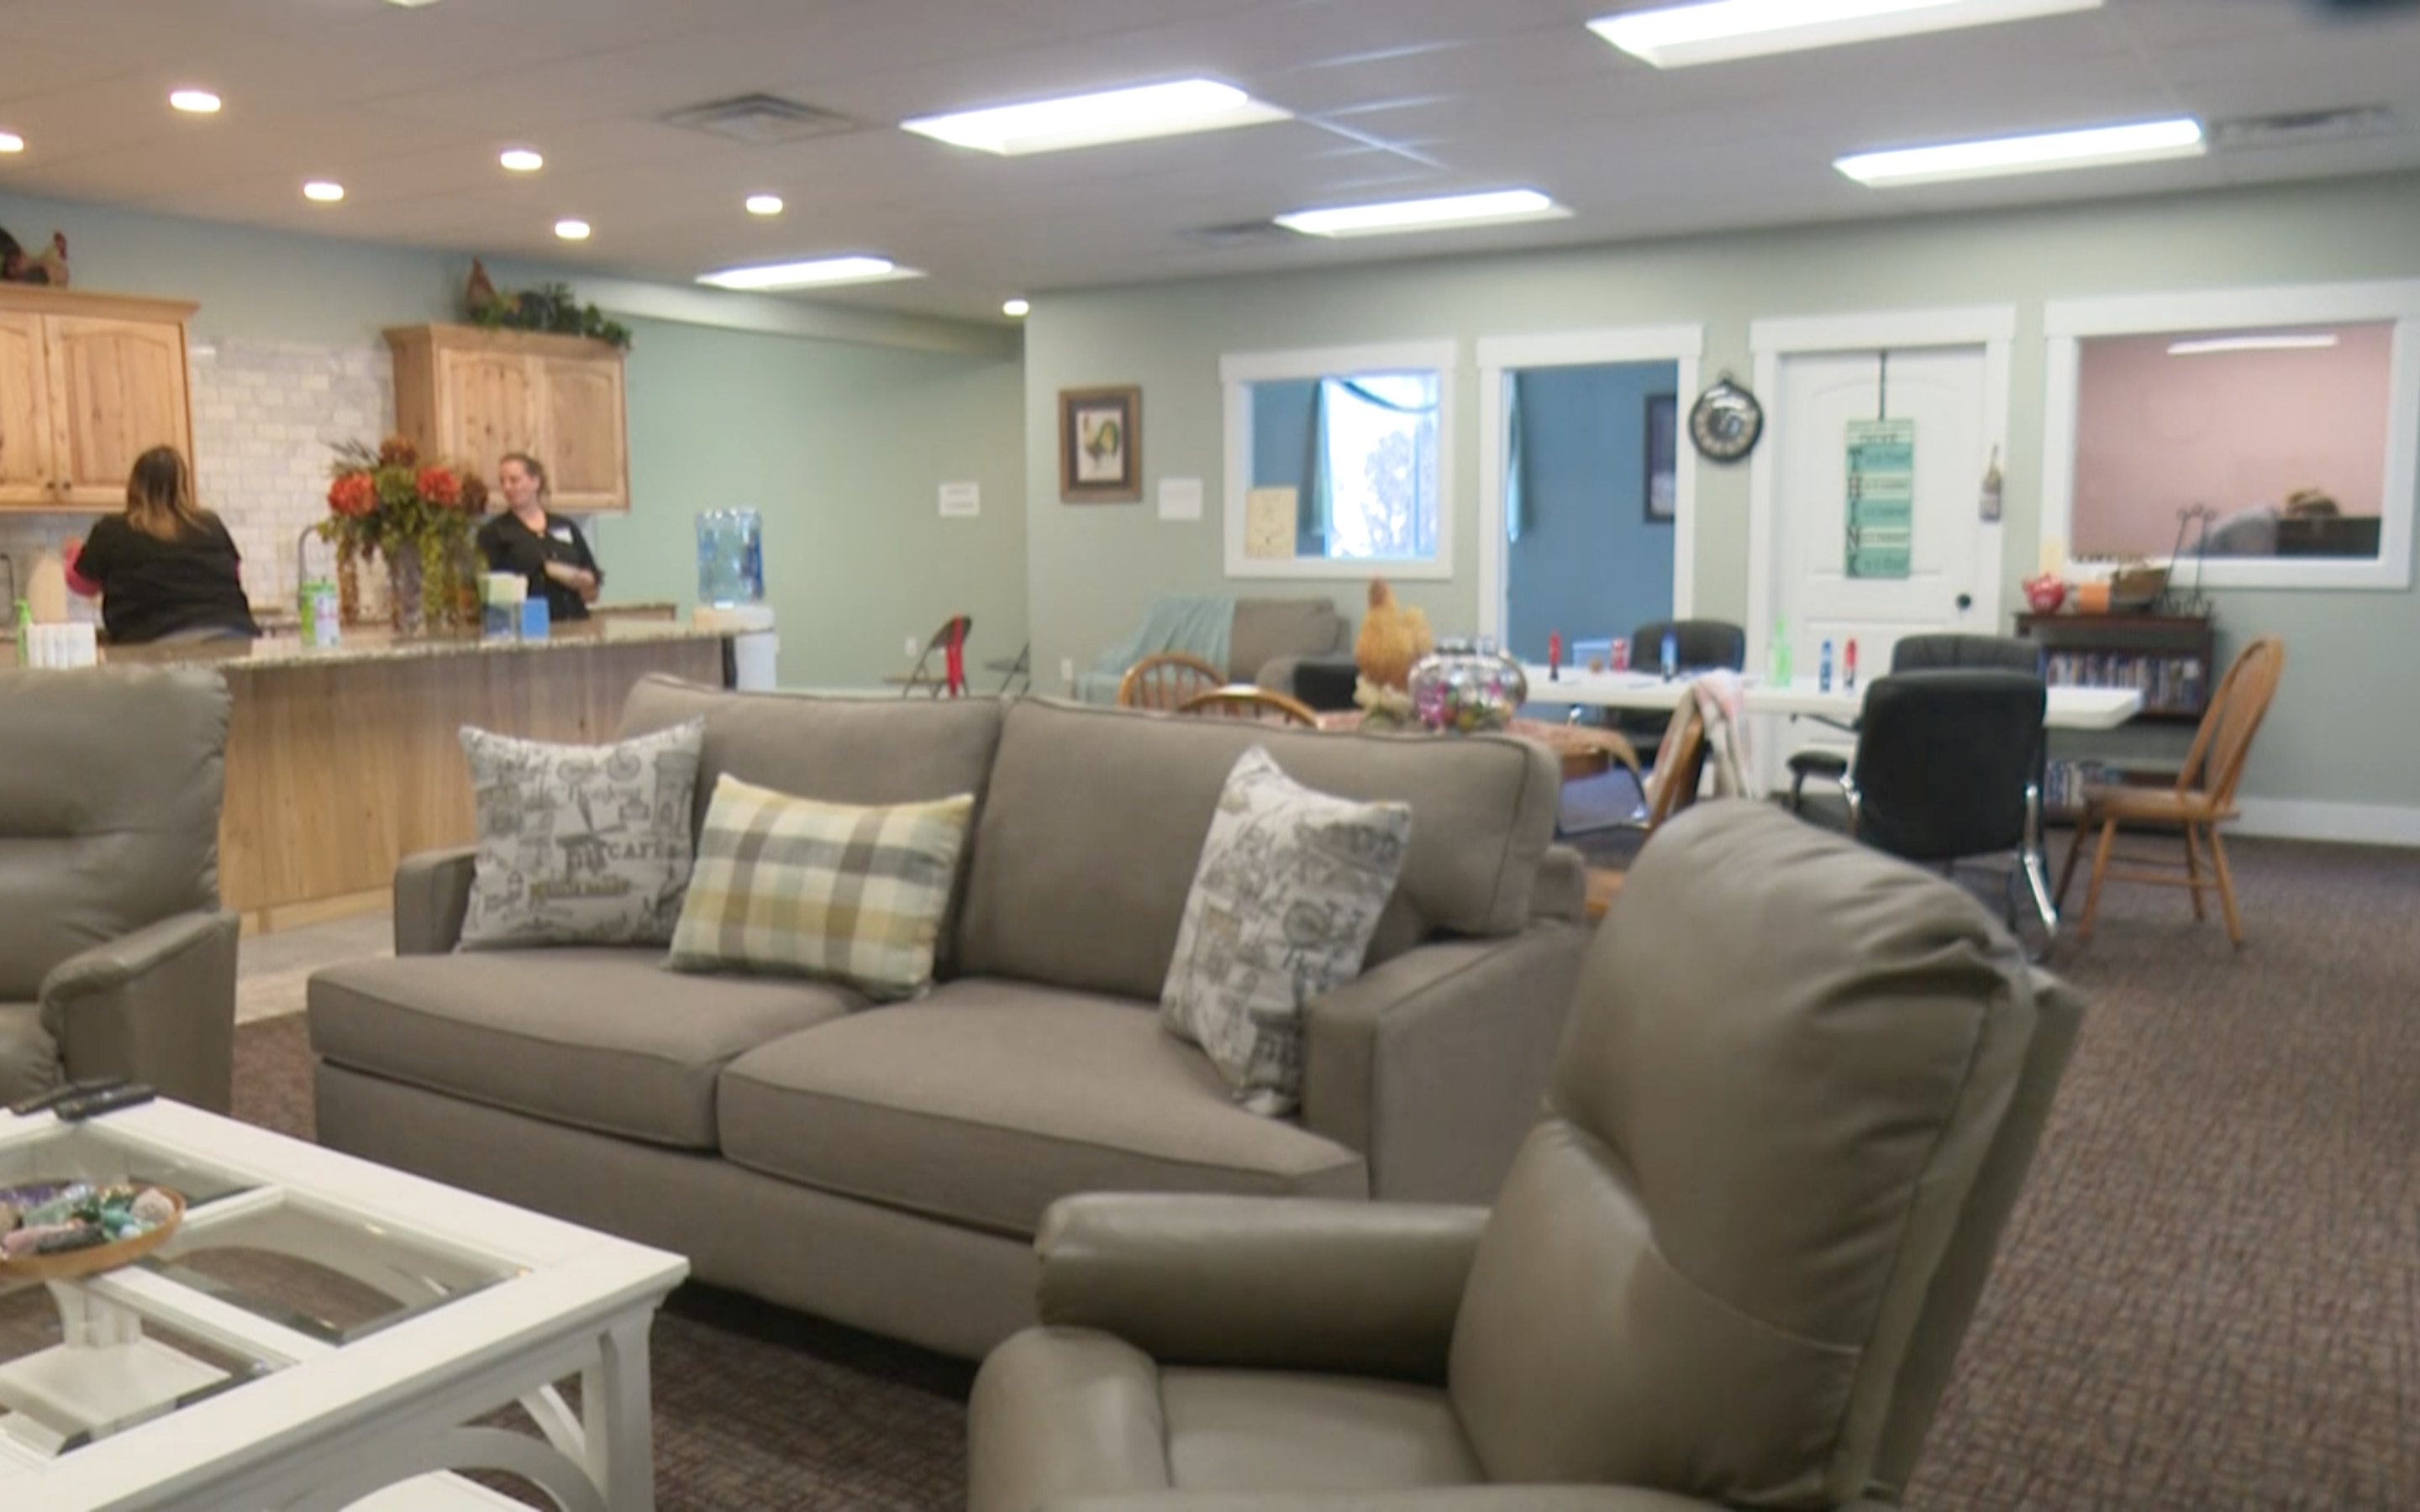 Living and dining area inside Calming Rivers Adult Day Care